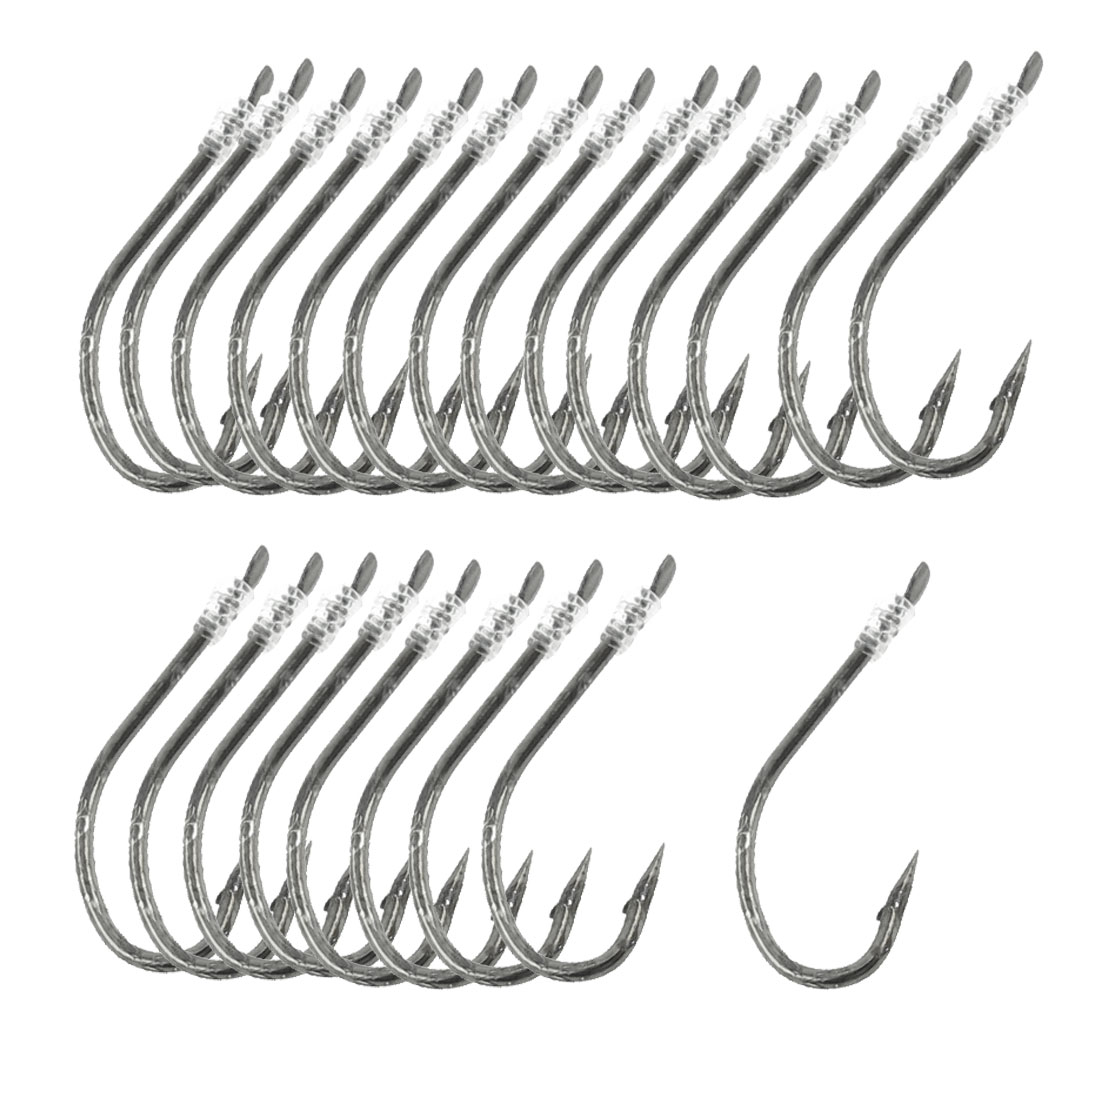 "40 Pcs 20"" Long Fishing Line 9# Darl Gray Metal Fish Hooks"